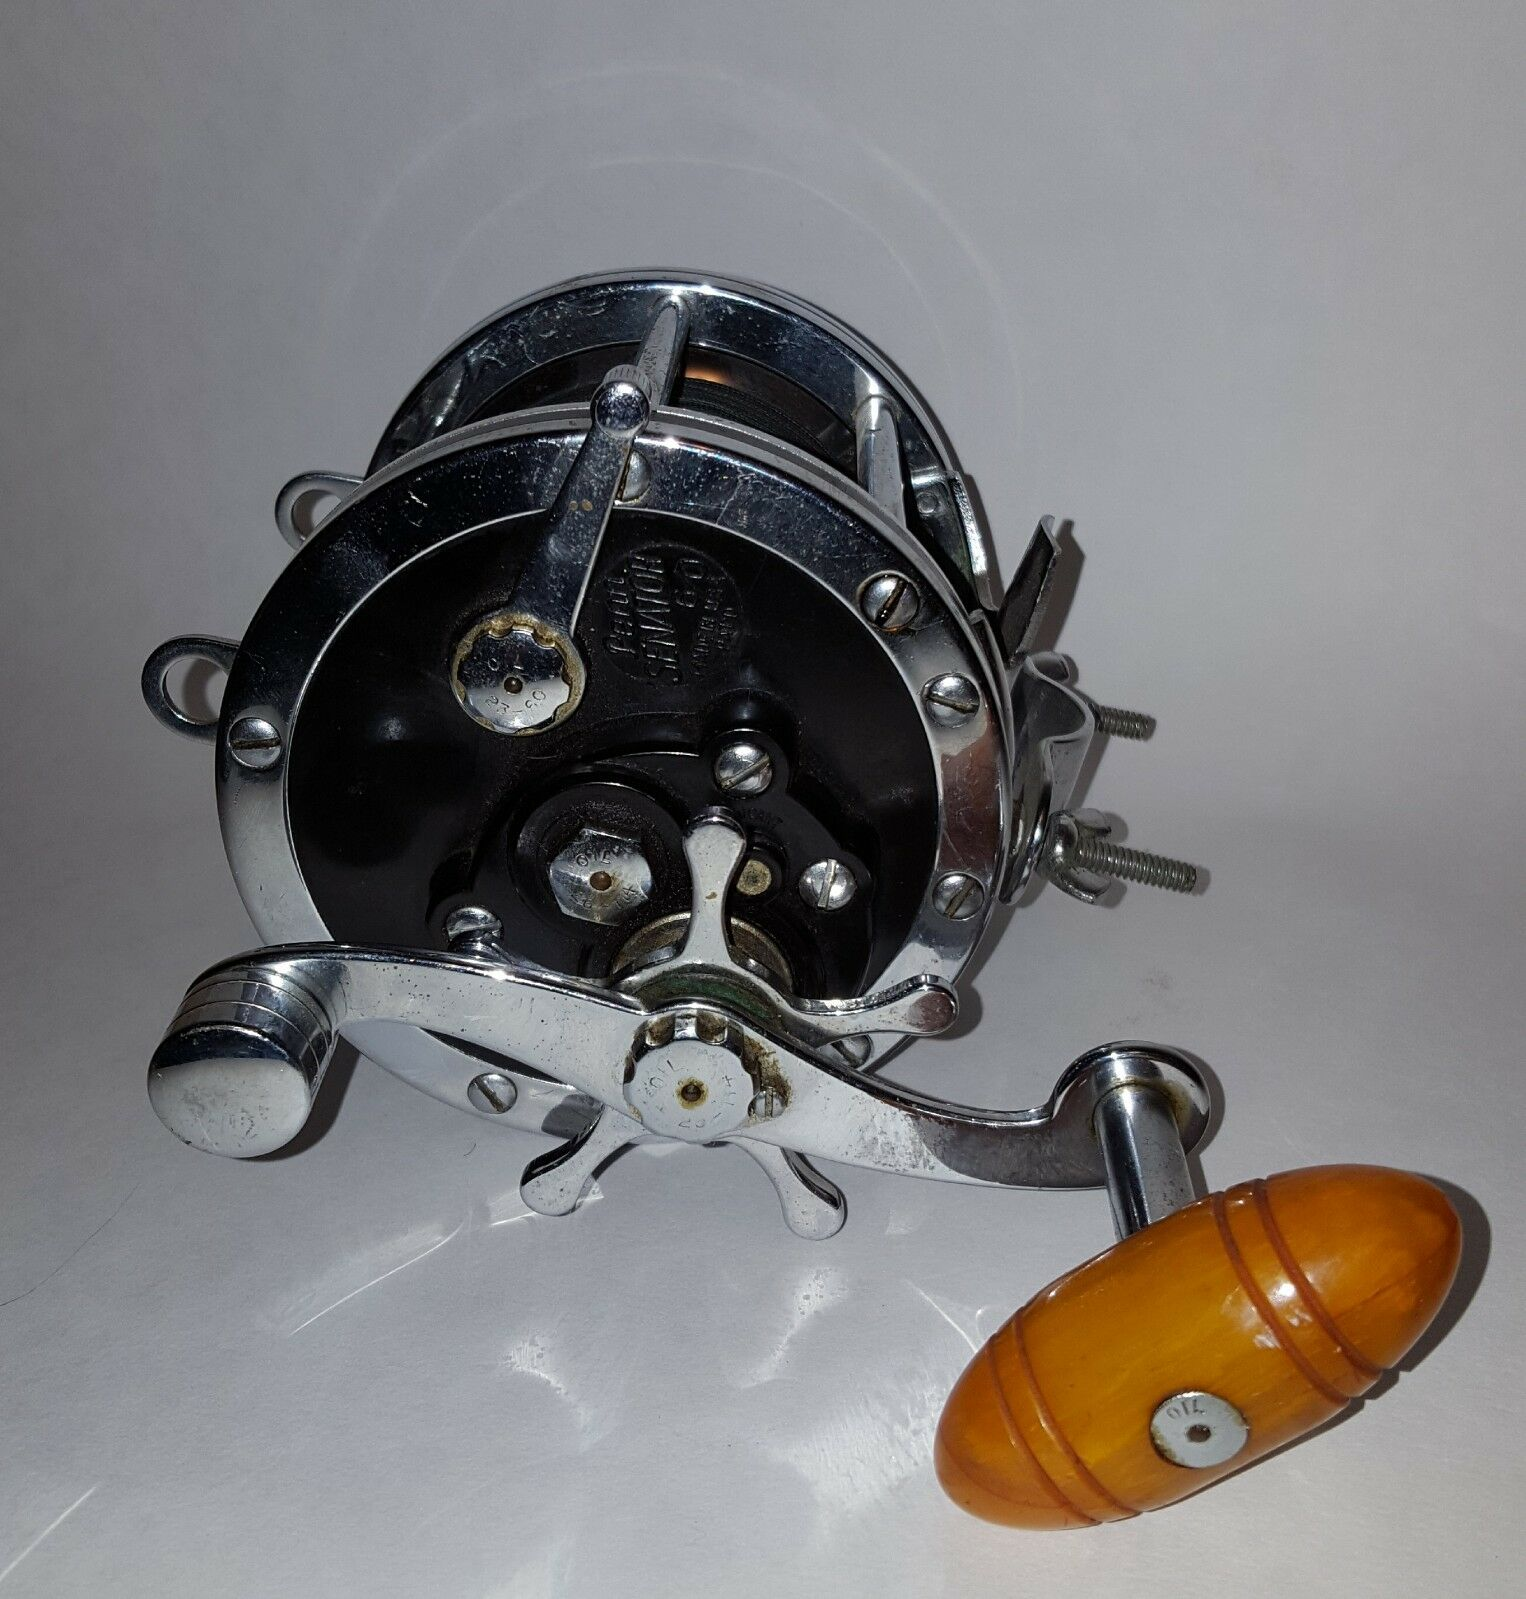 Vintage USA Penn Senator 6 0 Big Game Reel Sweet Condition Phili, Pa. Fishing